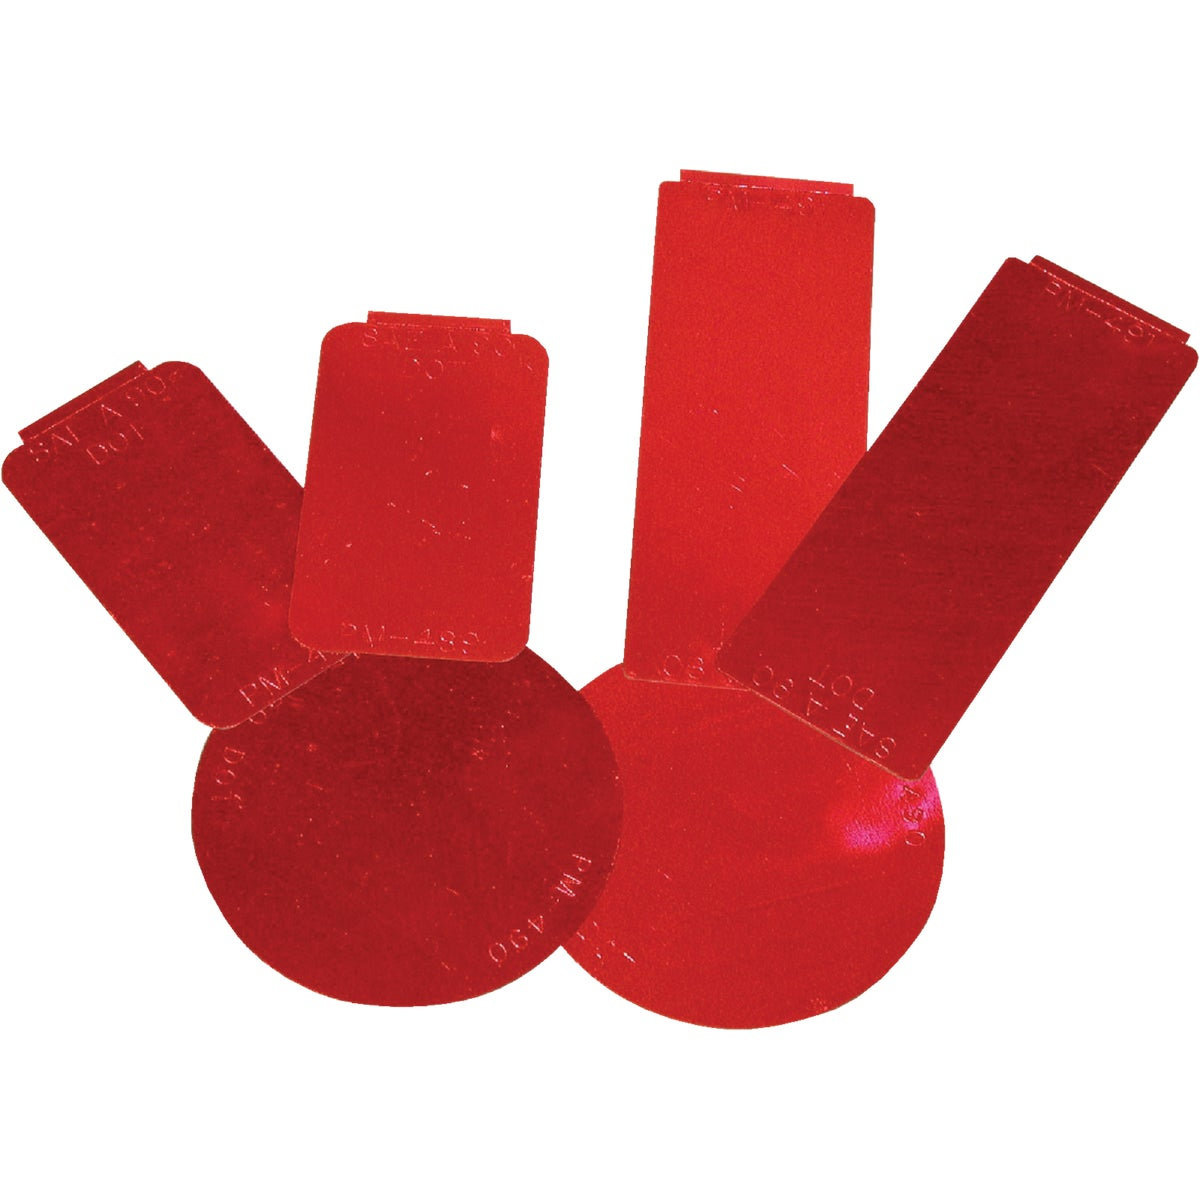 RED REFLECTOR KIT - V493KR by Peterson Mfg Co